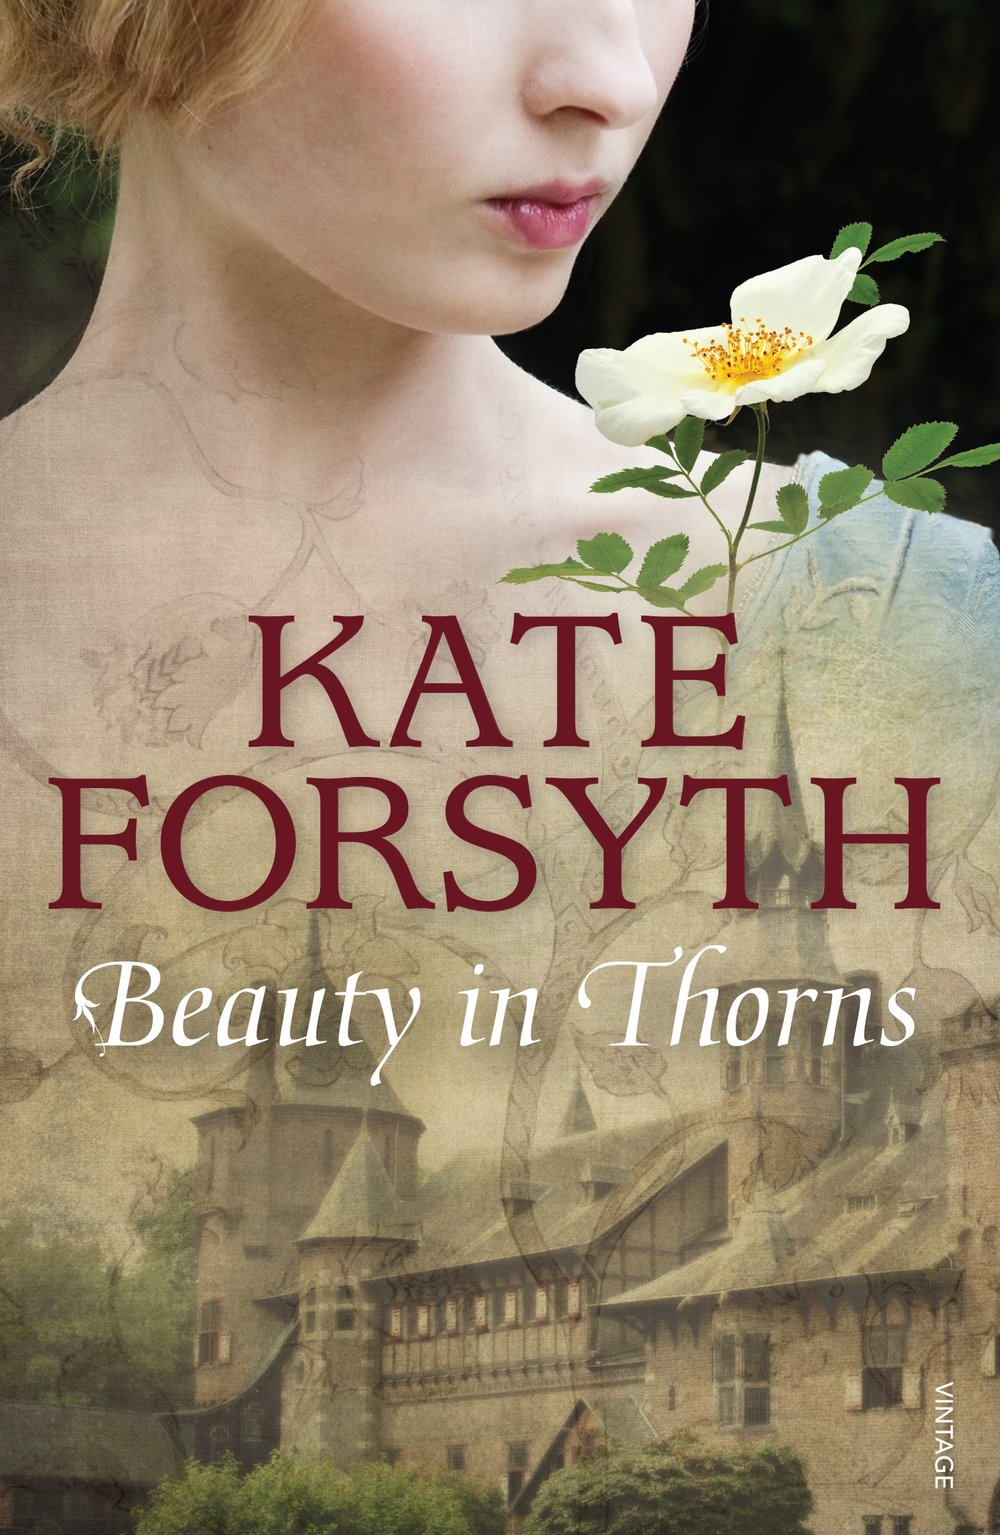 100 - Beauty in Thorns by Kate ForsythA reimagining of 'Sleeping Beauty' set amongst the wild bohemian circle of Pre-Raphaelite artists and poets.Bringing to life the dramatic true story of love, obsession and heartbreak that lies behind the Victorian era's most famous paintings,Beauty in Thornsis the story of awakenings of all kinds.